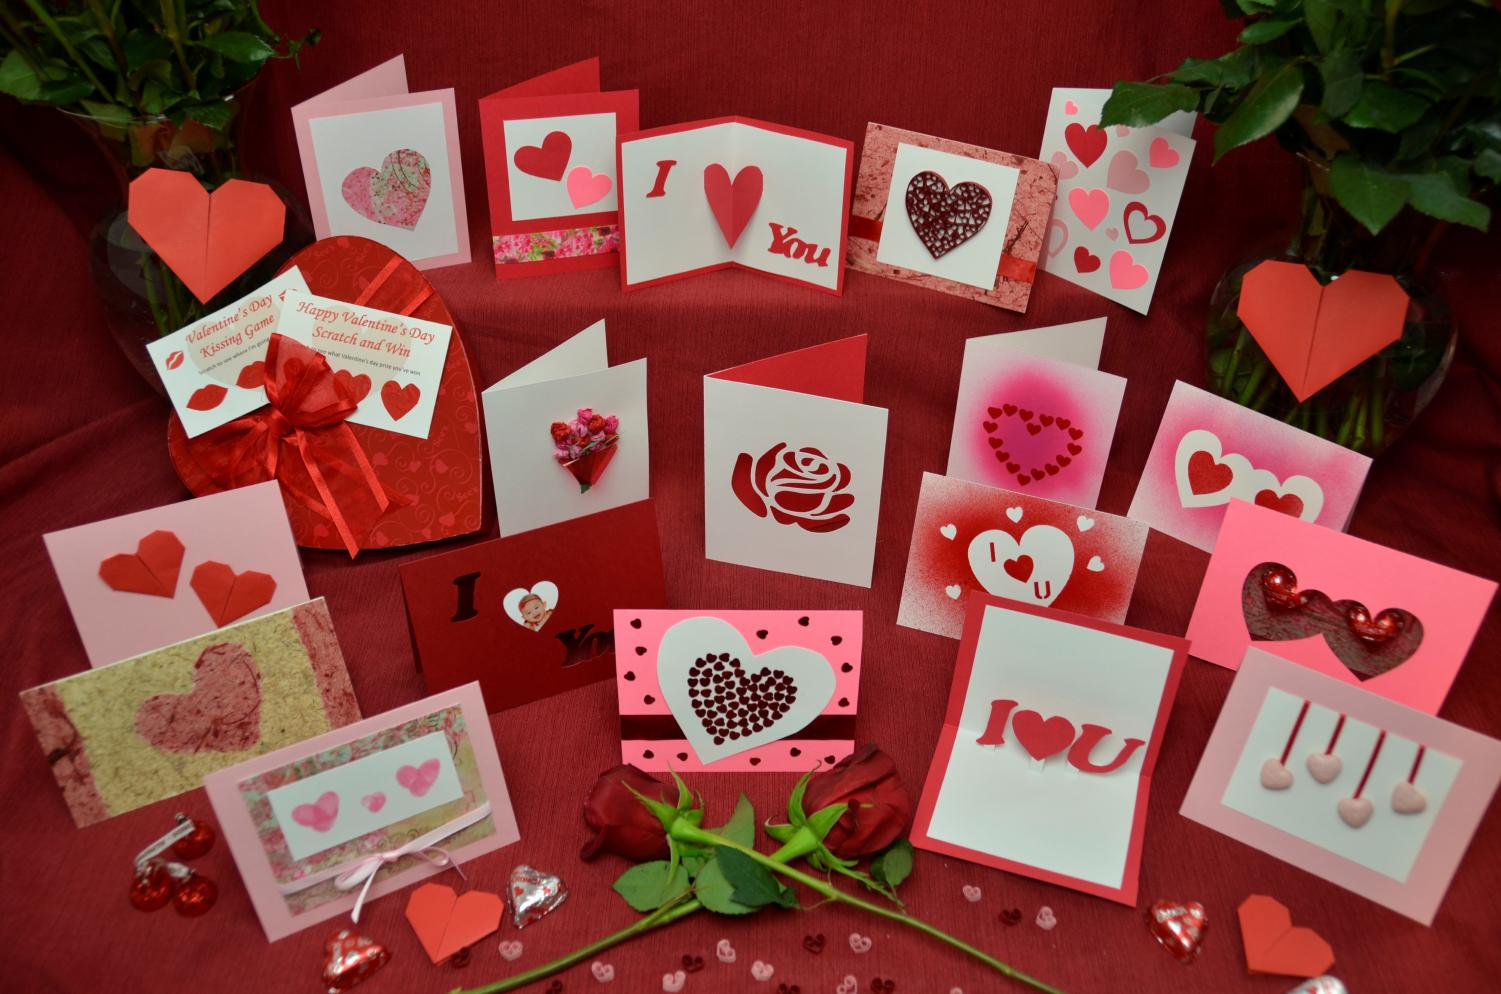 Why is writing a card for a loved one such a bad idea? |Photo from Google Images